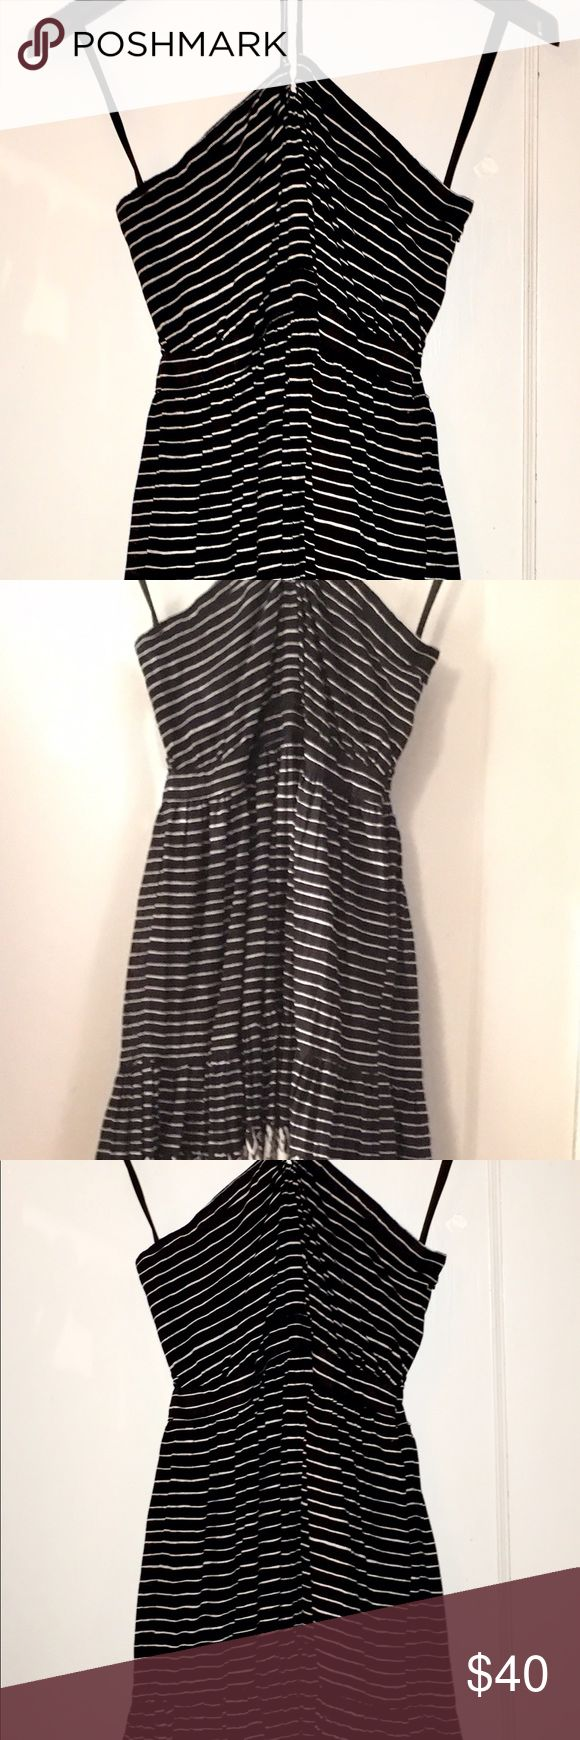 Vintage dress Vintage black and white print and striped summer halter dress. So pretty! Super adjustable, fits S/M perfectly. Brand new, never worn. Brandy Melville Dresses Backless